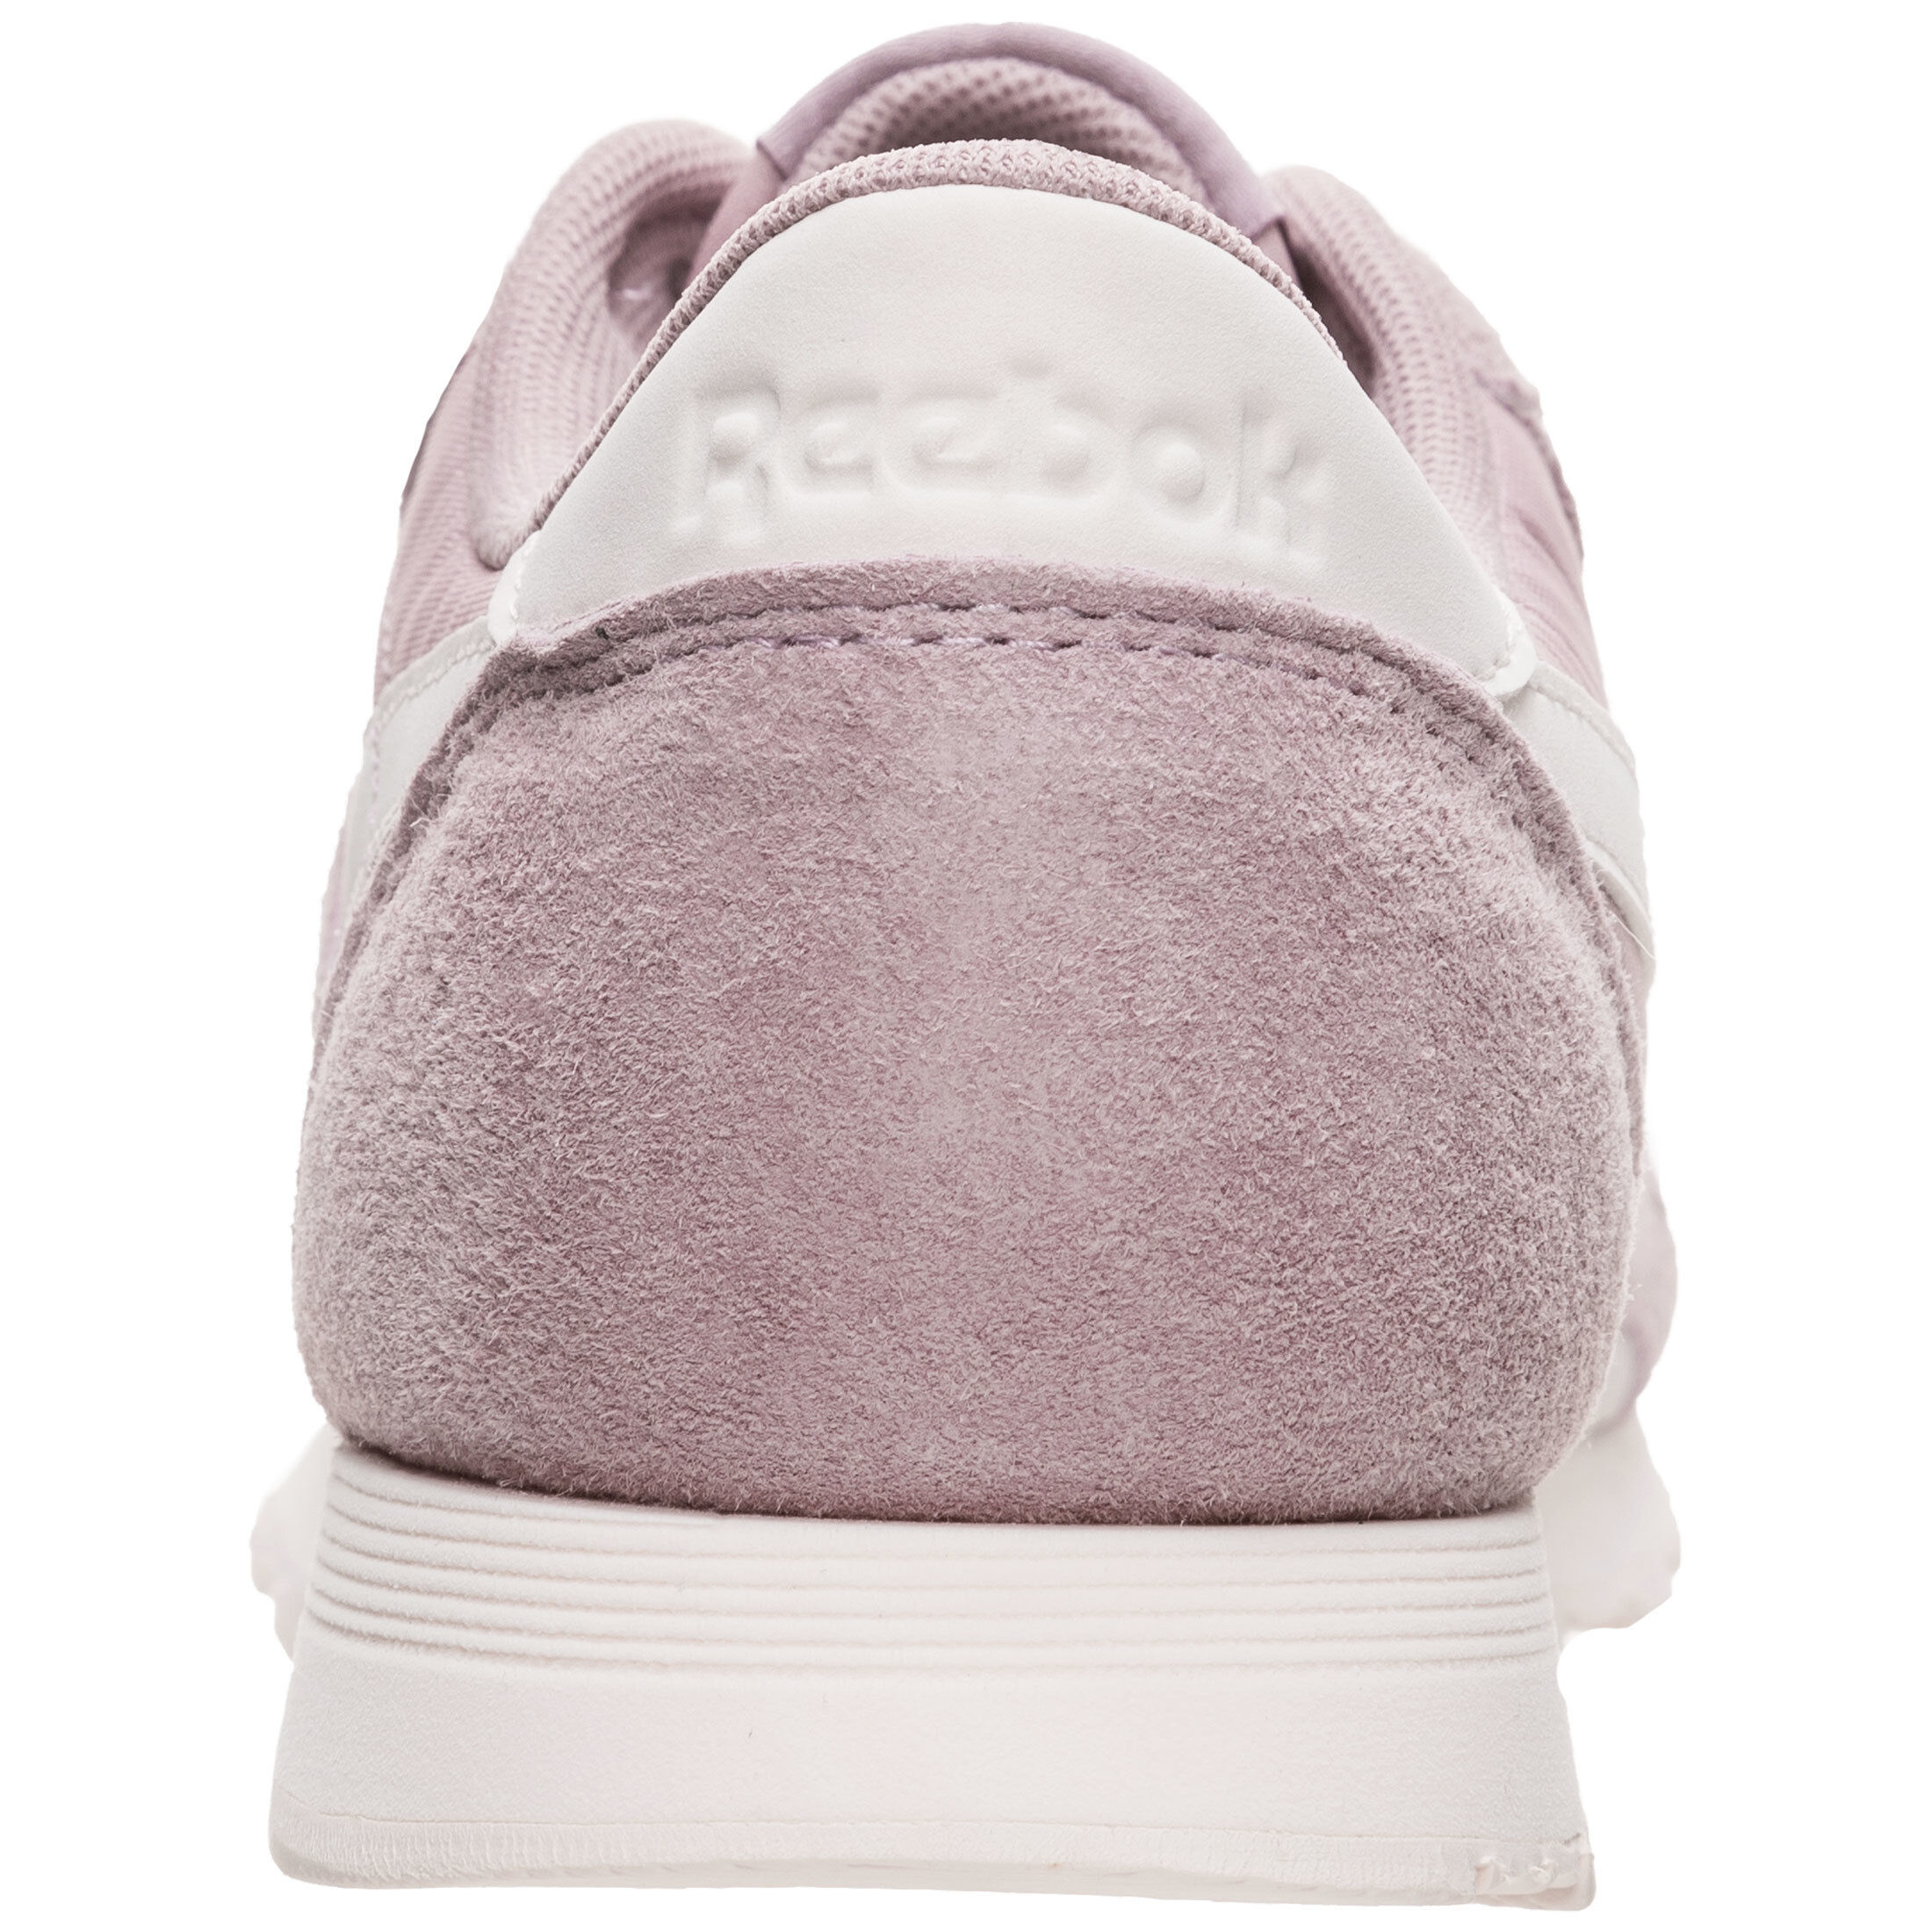 Classic Leather Nylon Sneaker Damen